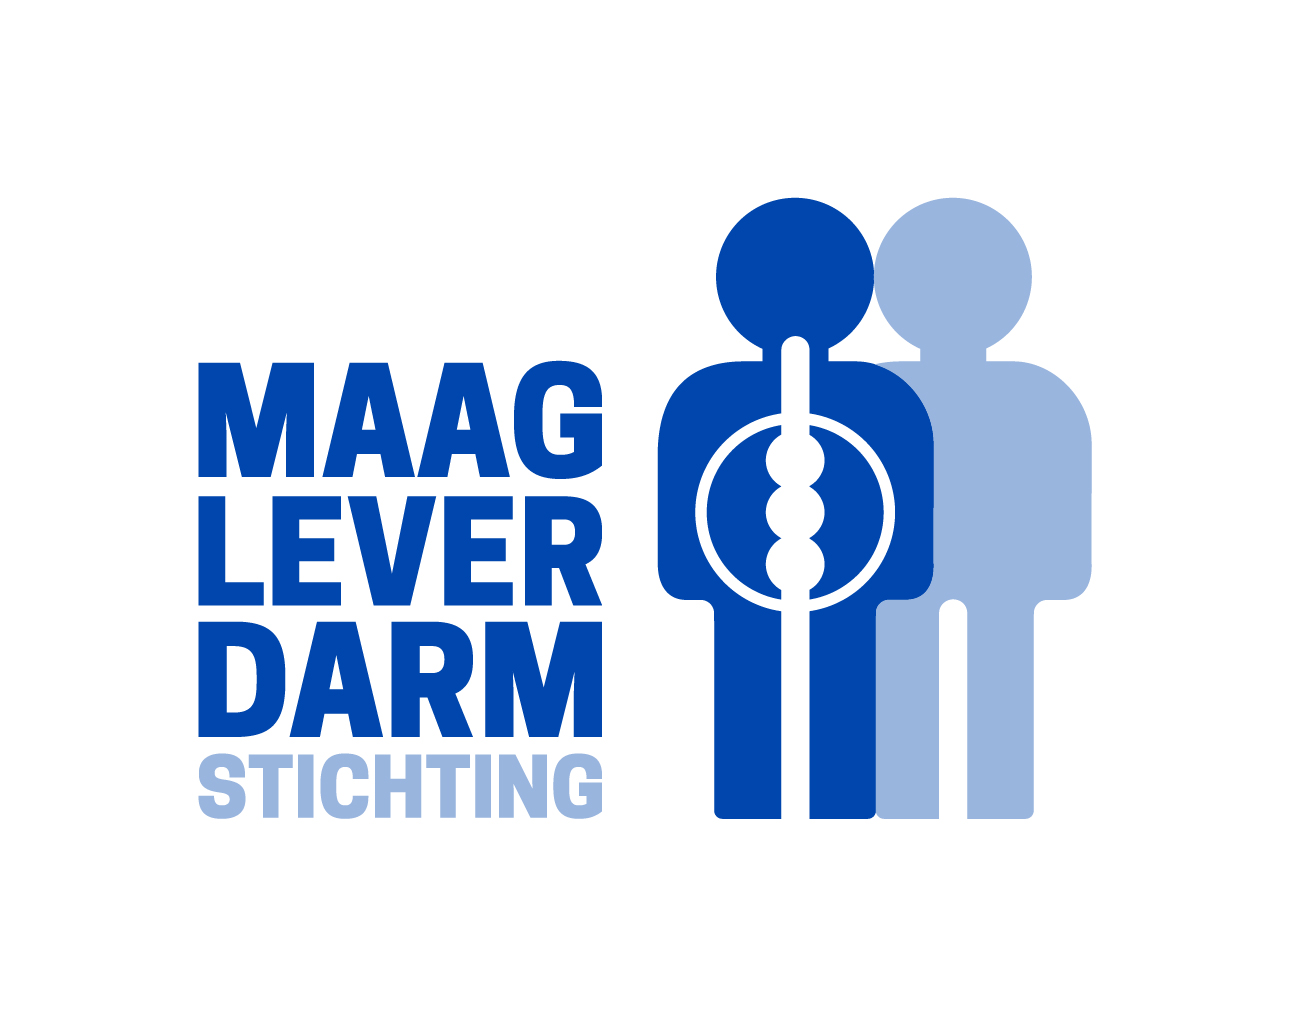 De maag lever darm stichting over iresearch